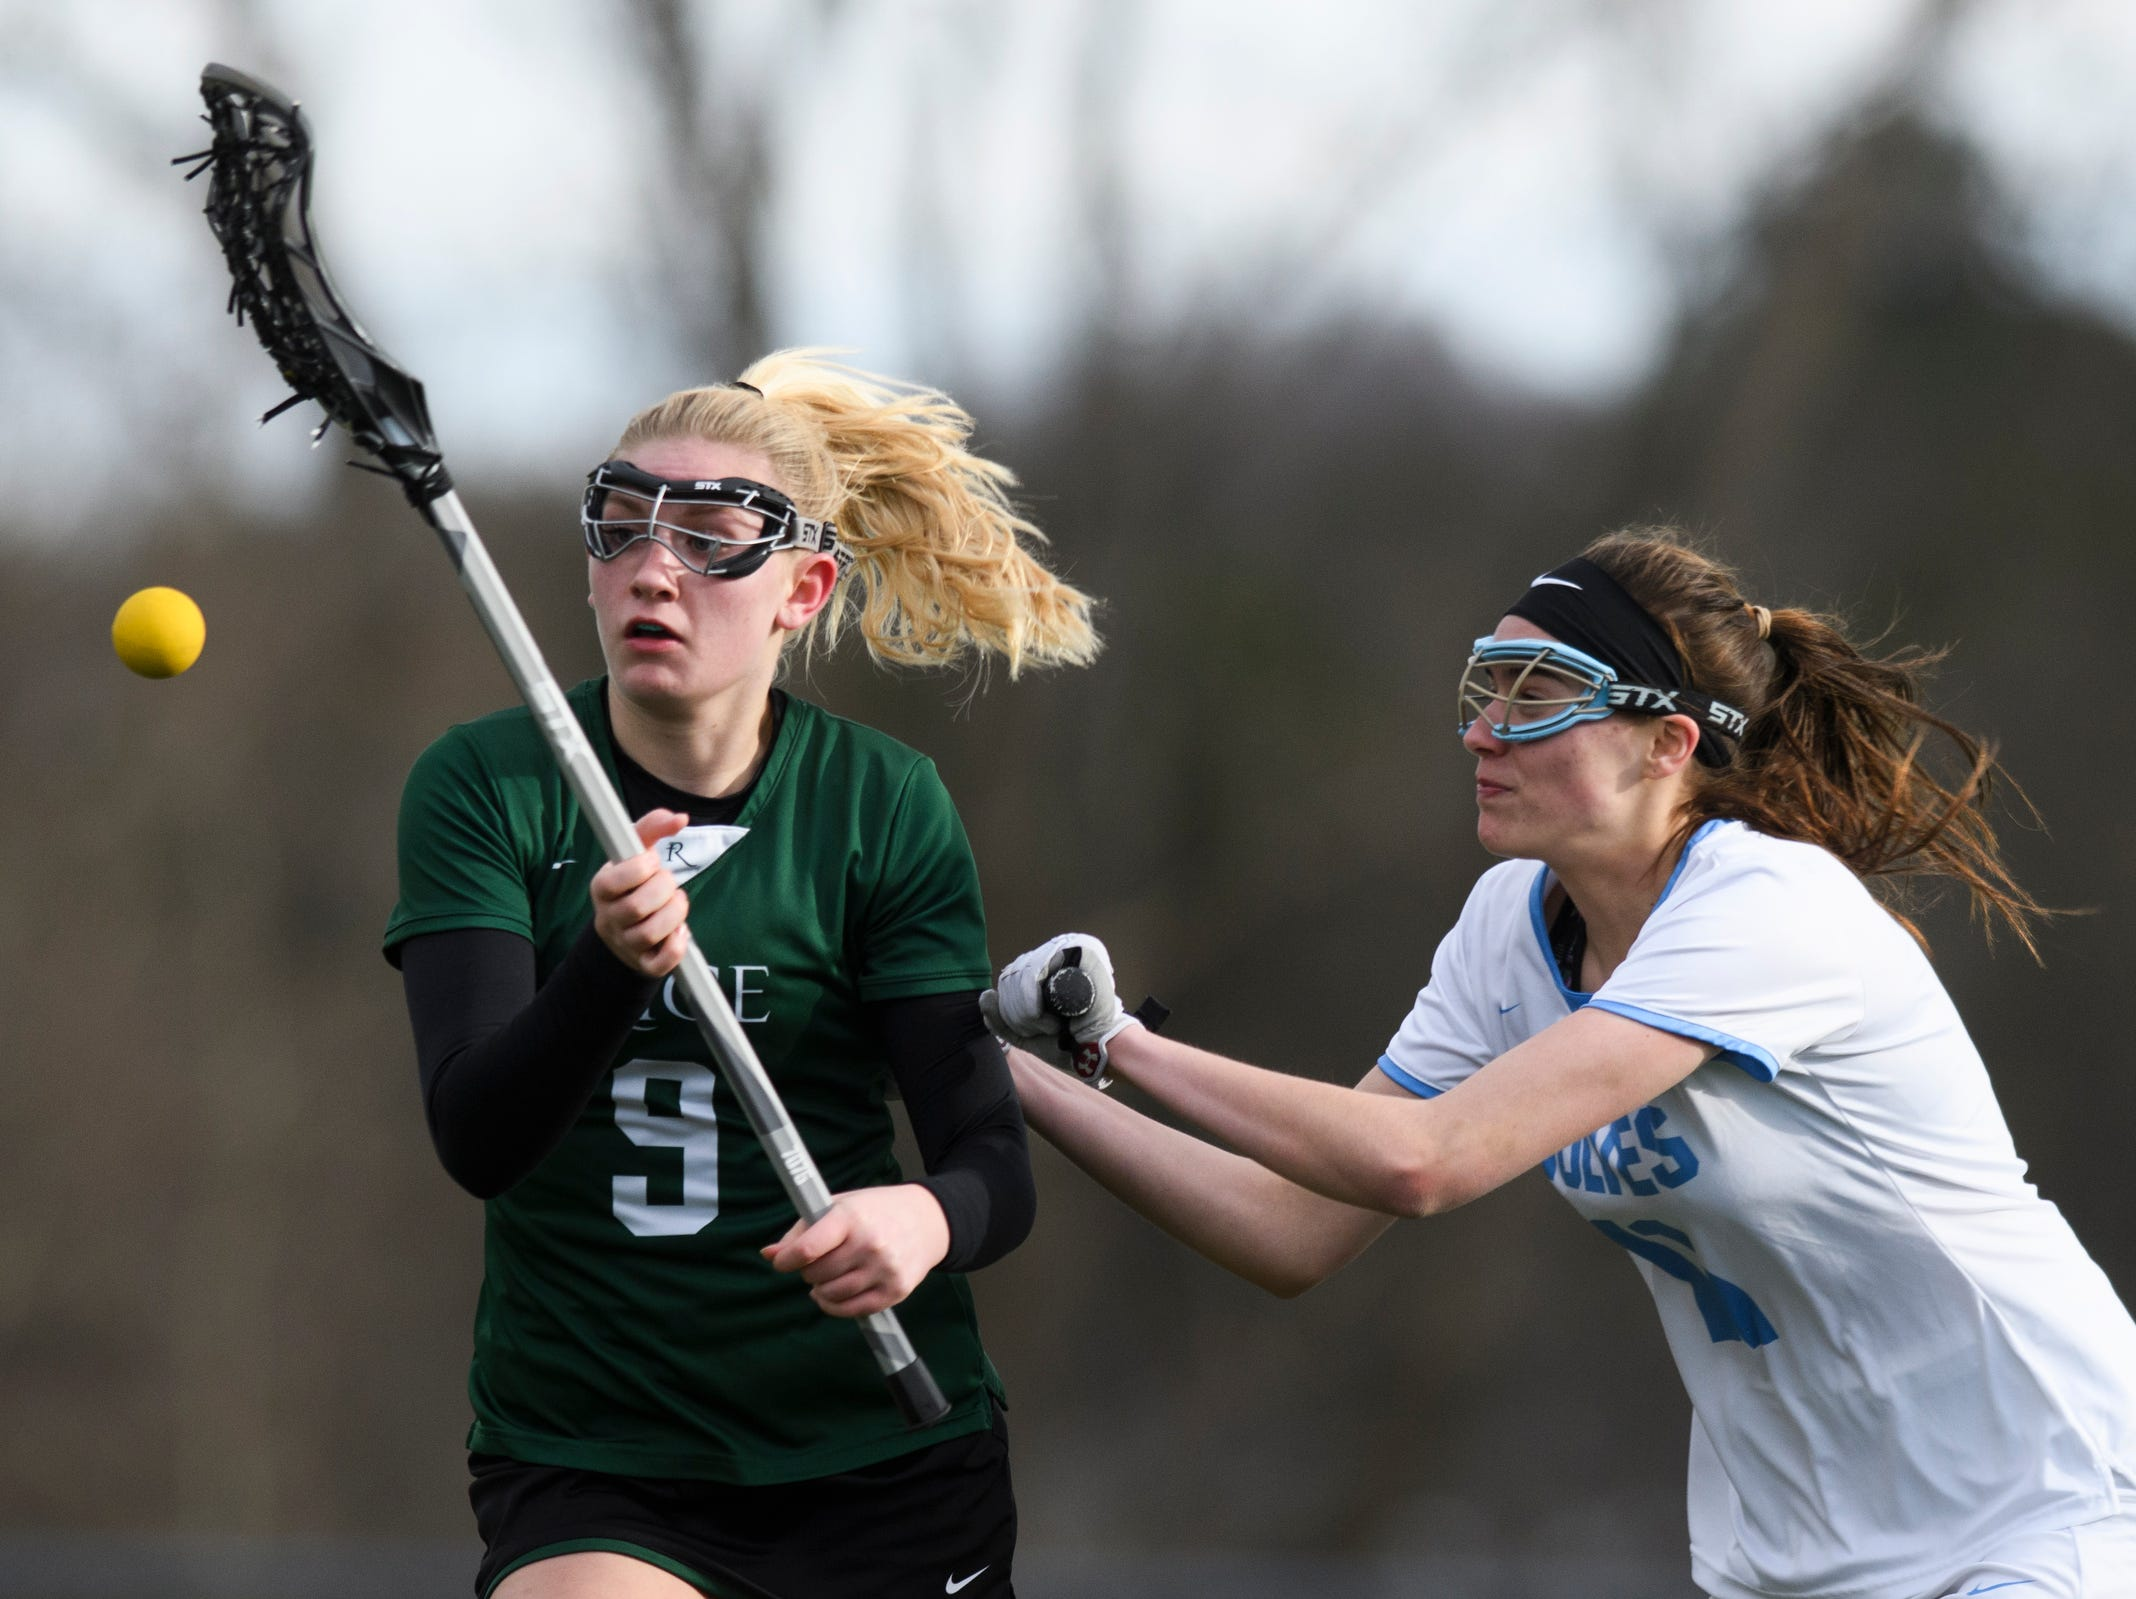 South Burlington's Christina March (11) knocks the ball out of the stick of Rice's Alex Dostie (9) during the girls lacrosse game between the Rice Green Knights and the South Burlington Wolves at South Burlington High School on Tuesday afternoon April 16, 2019 in South Burlington, Vermont.